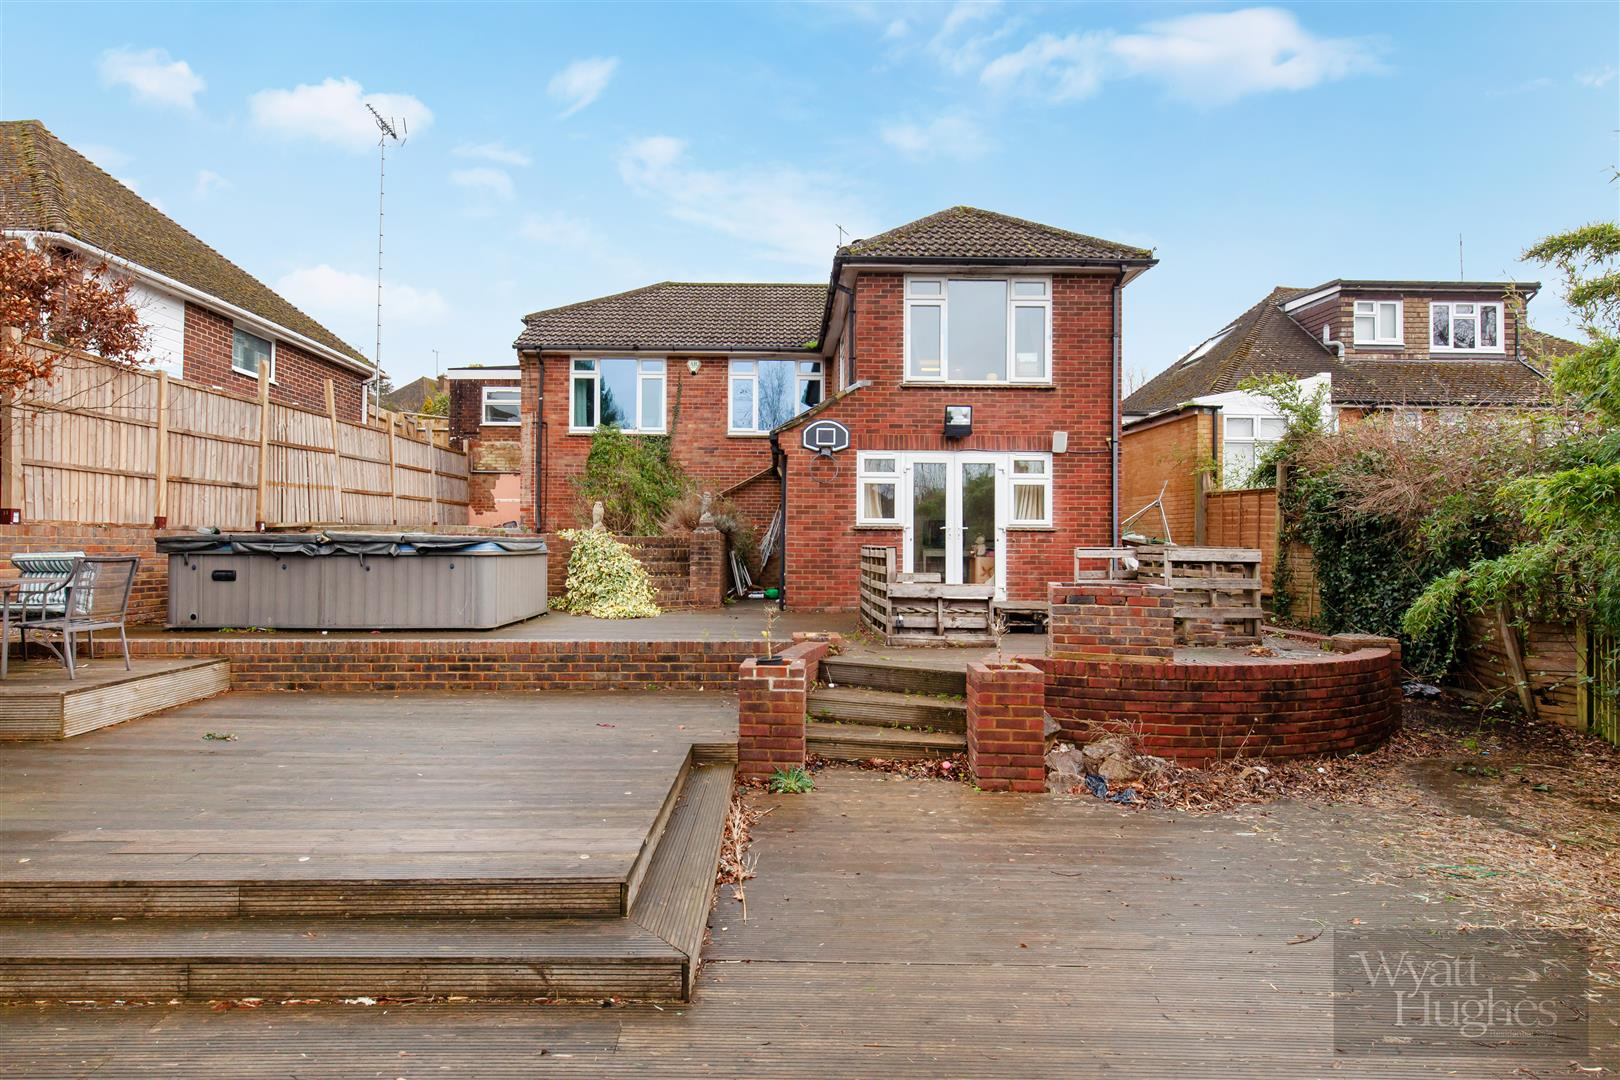 4 bed detached-bungalow for sale in Gorselands, Battle  - Property Image 24